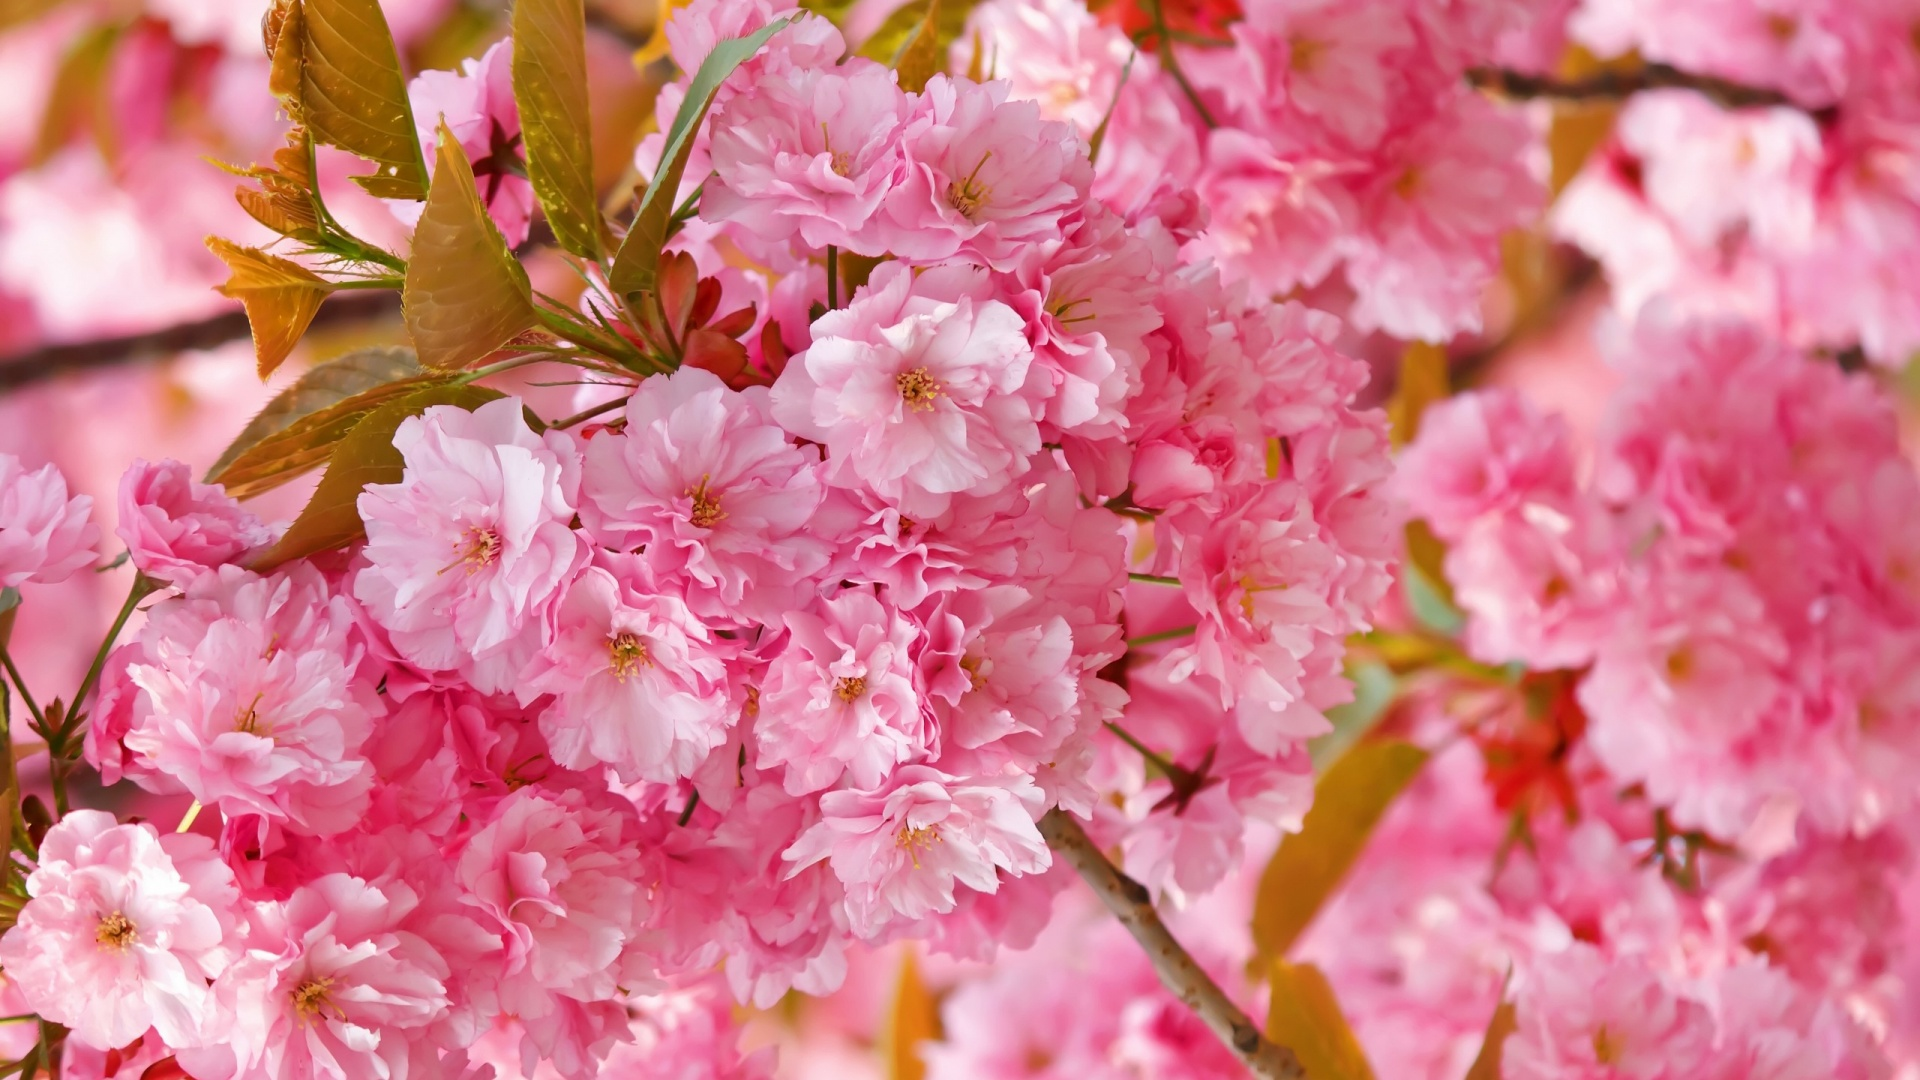 Awesome Hd Wallpapers For Mac Flowers Cherry Blossom Wallpapers Airwallpaper Com